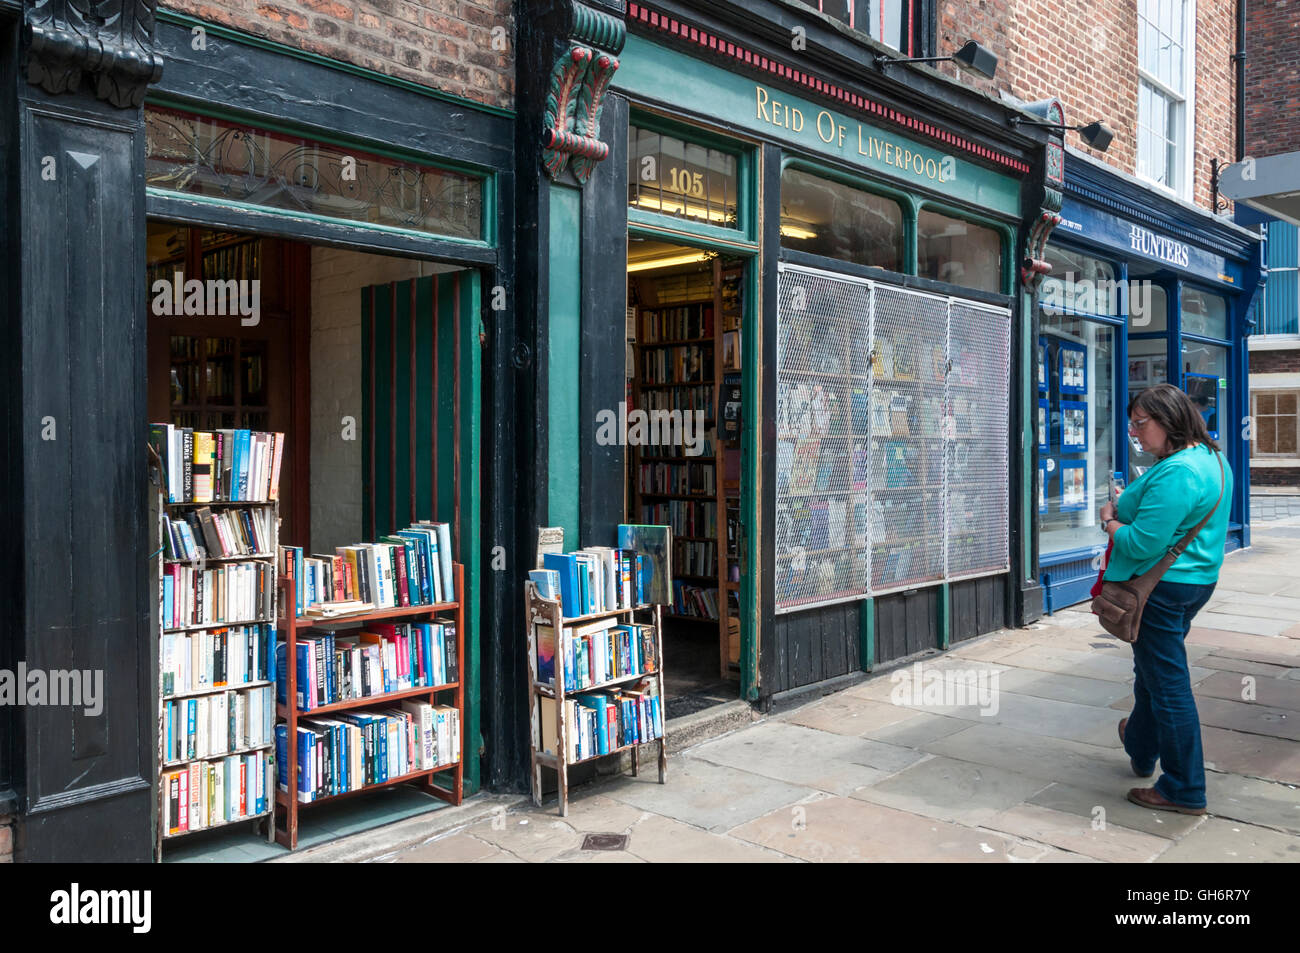 Customer looking at books stacked outside Reid of Liverpool secondhand bookshop. - Stock Image